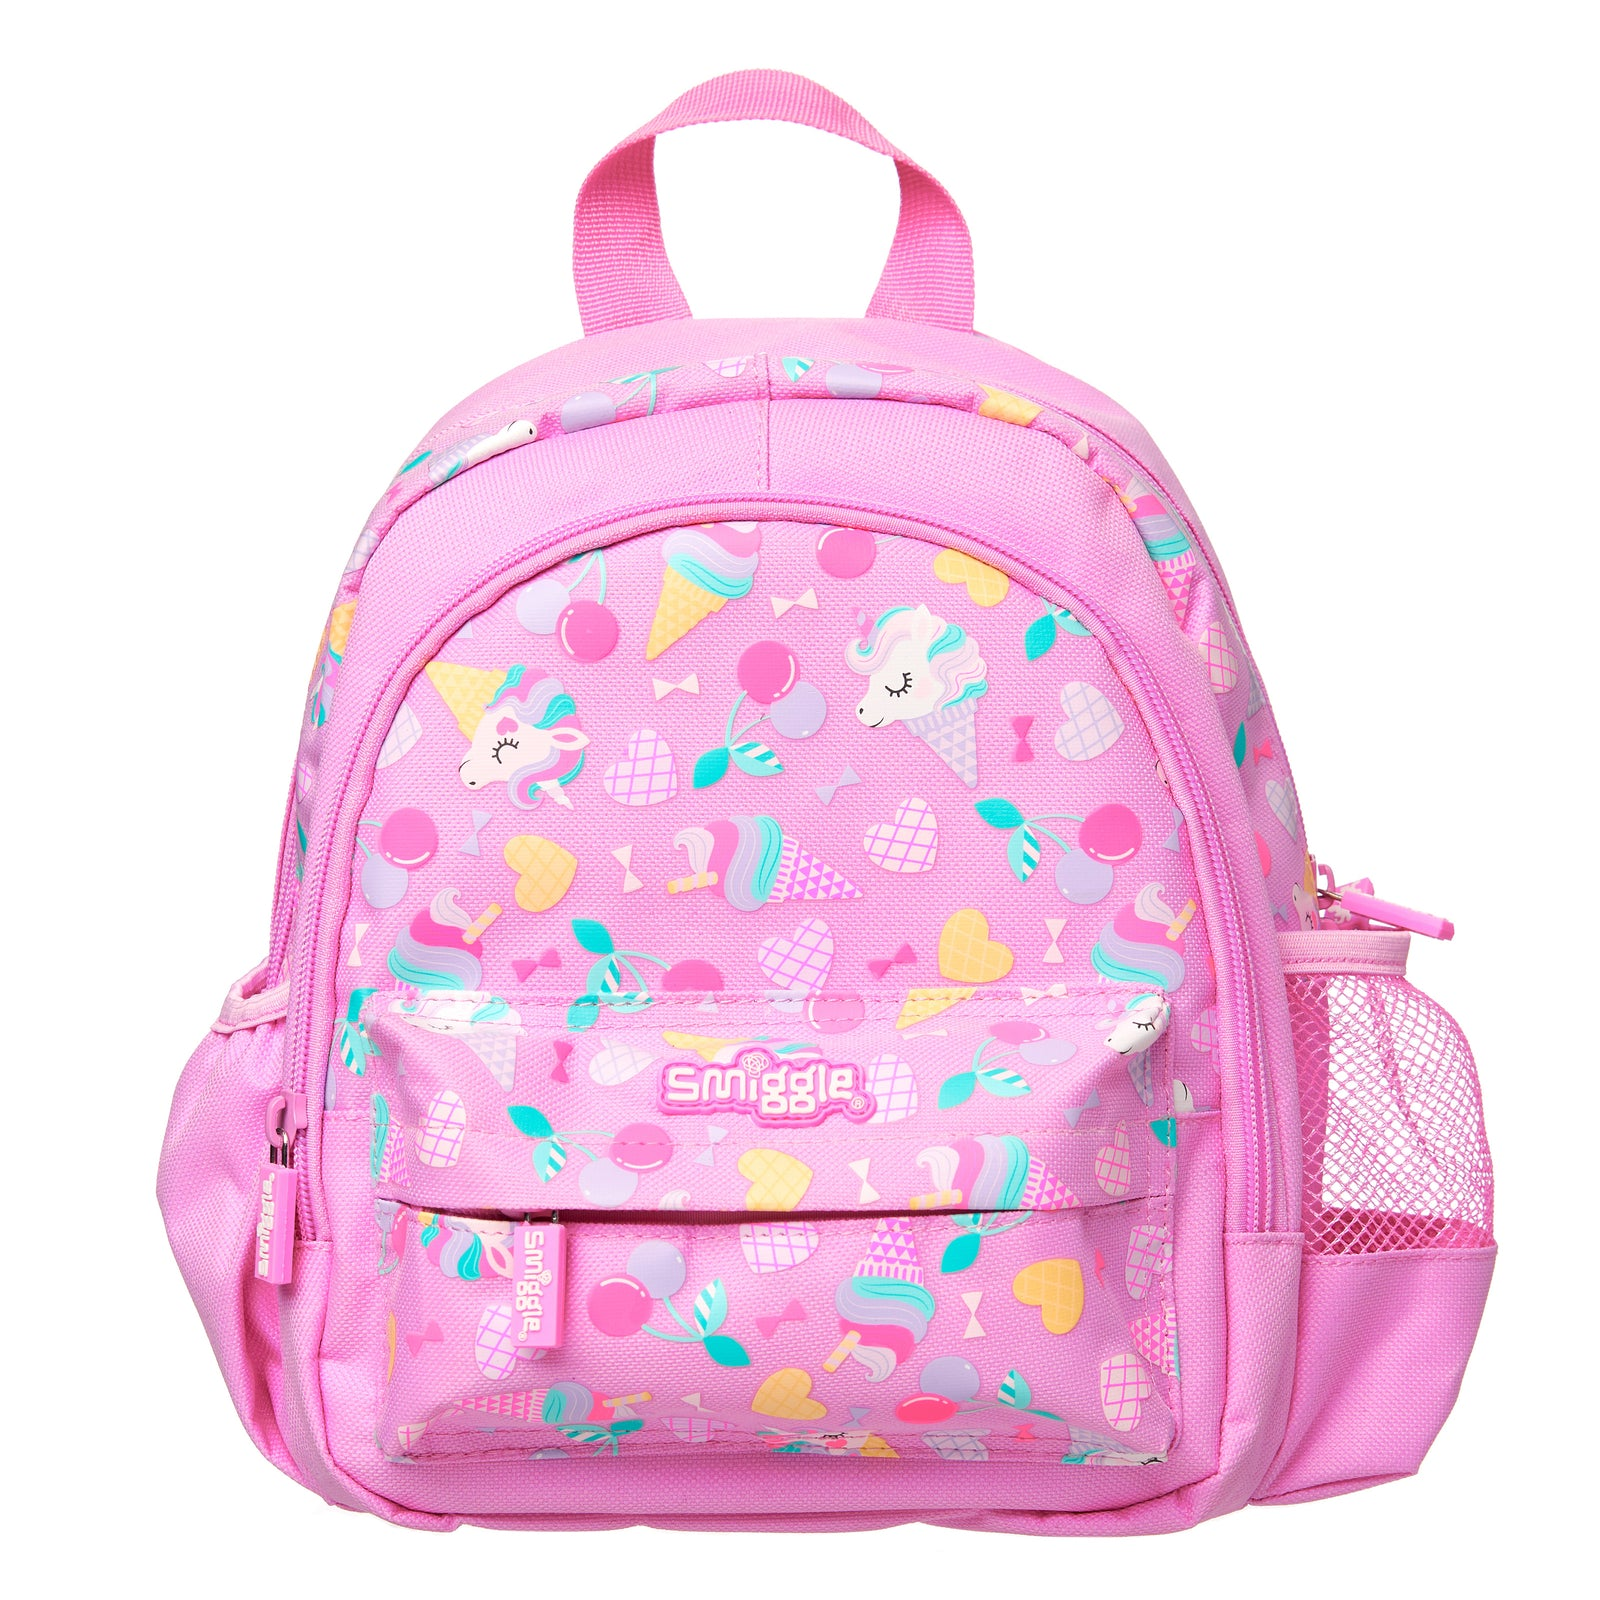 SMIGGLE - MAGIC TEENY TINY BACKPACK PINK - MyVaniteeCase